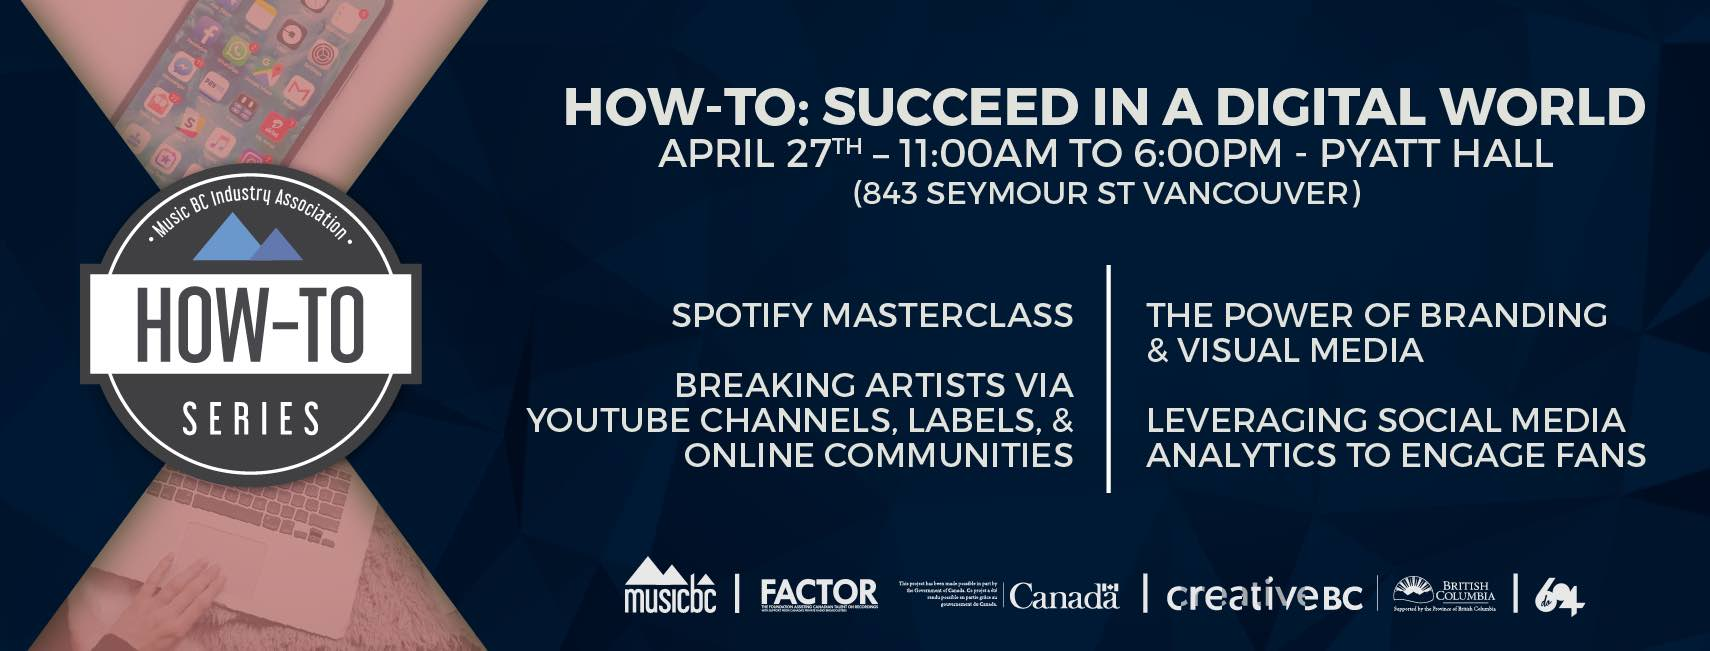 Free Workshop April 27th Speak For >> Music Bc Workshops Speakers How To Series Music Bc